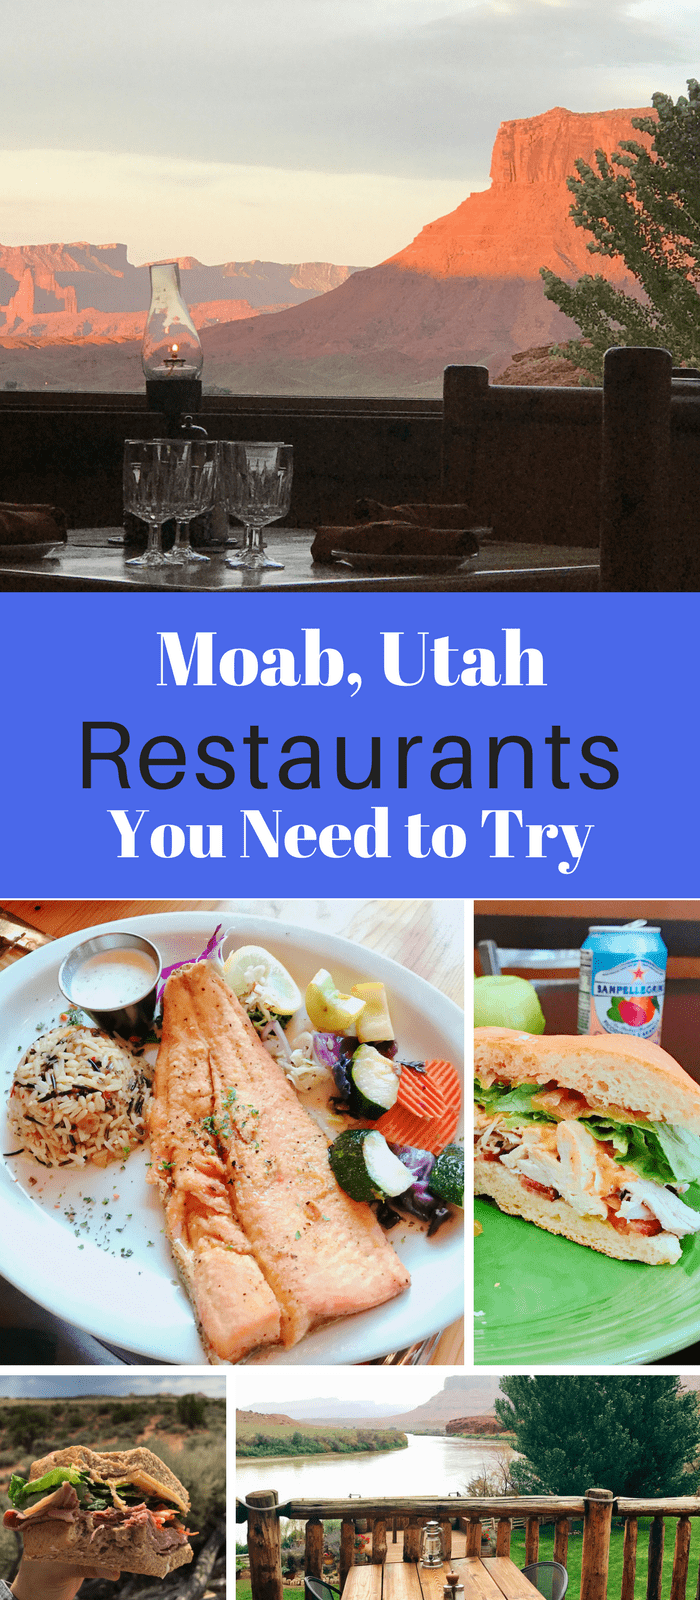 Looking for restuarants in Moab, Utah? These family-friendly restaurants are uor picks for the best food in the area. These local spots are ideal for your next visit